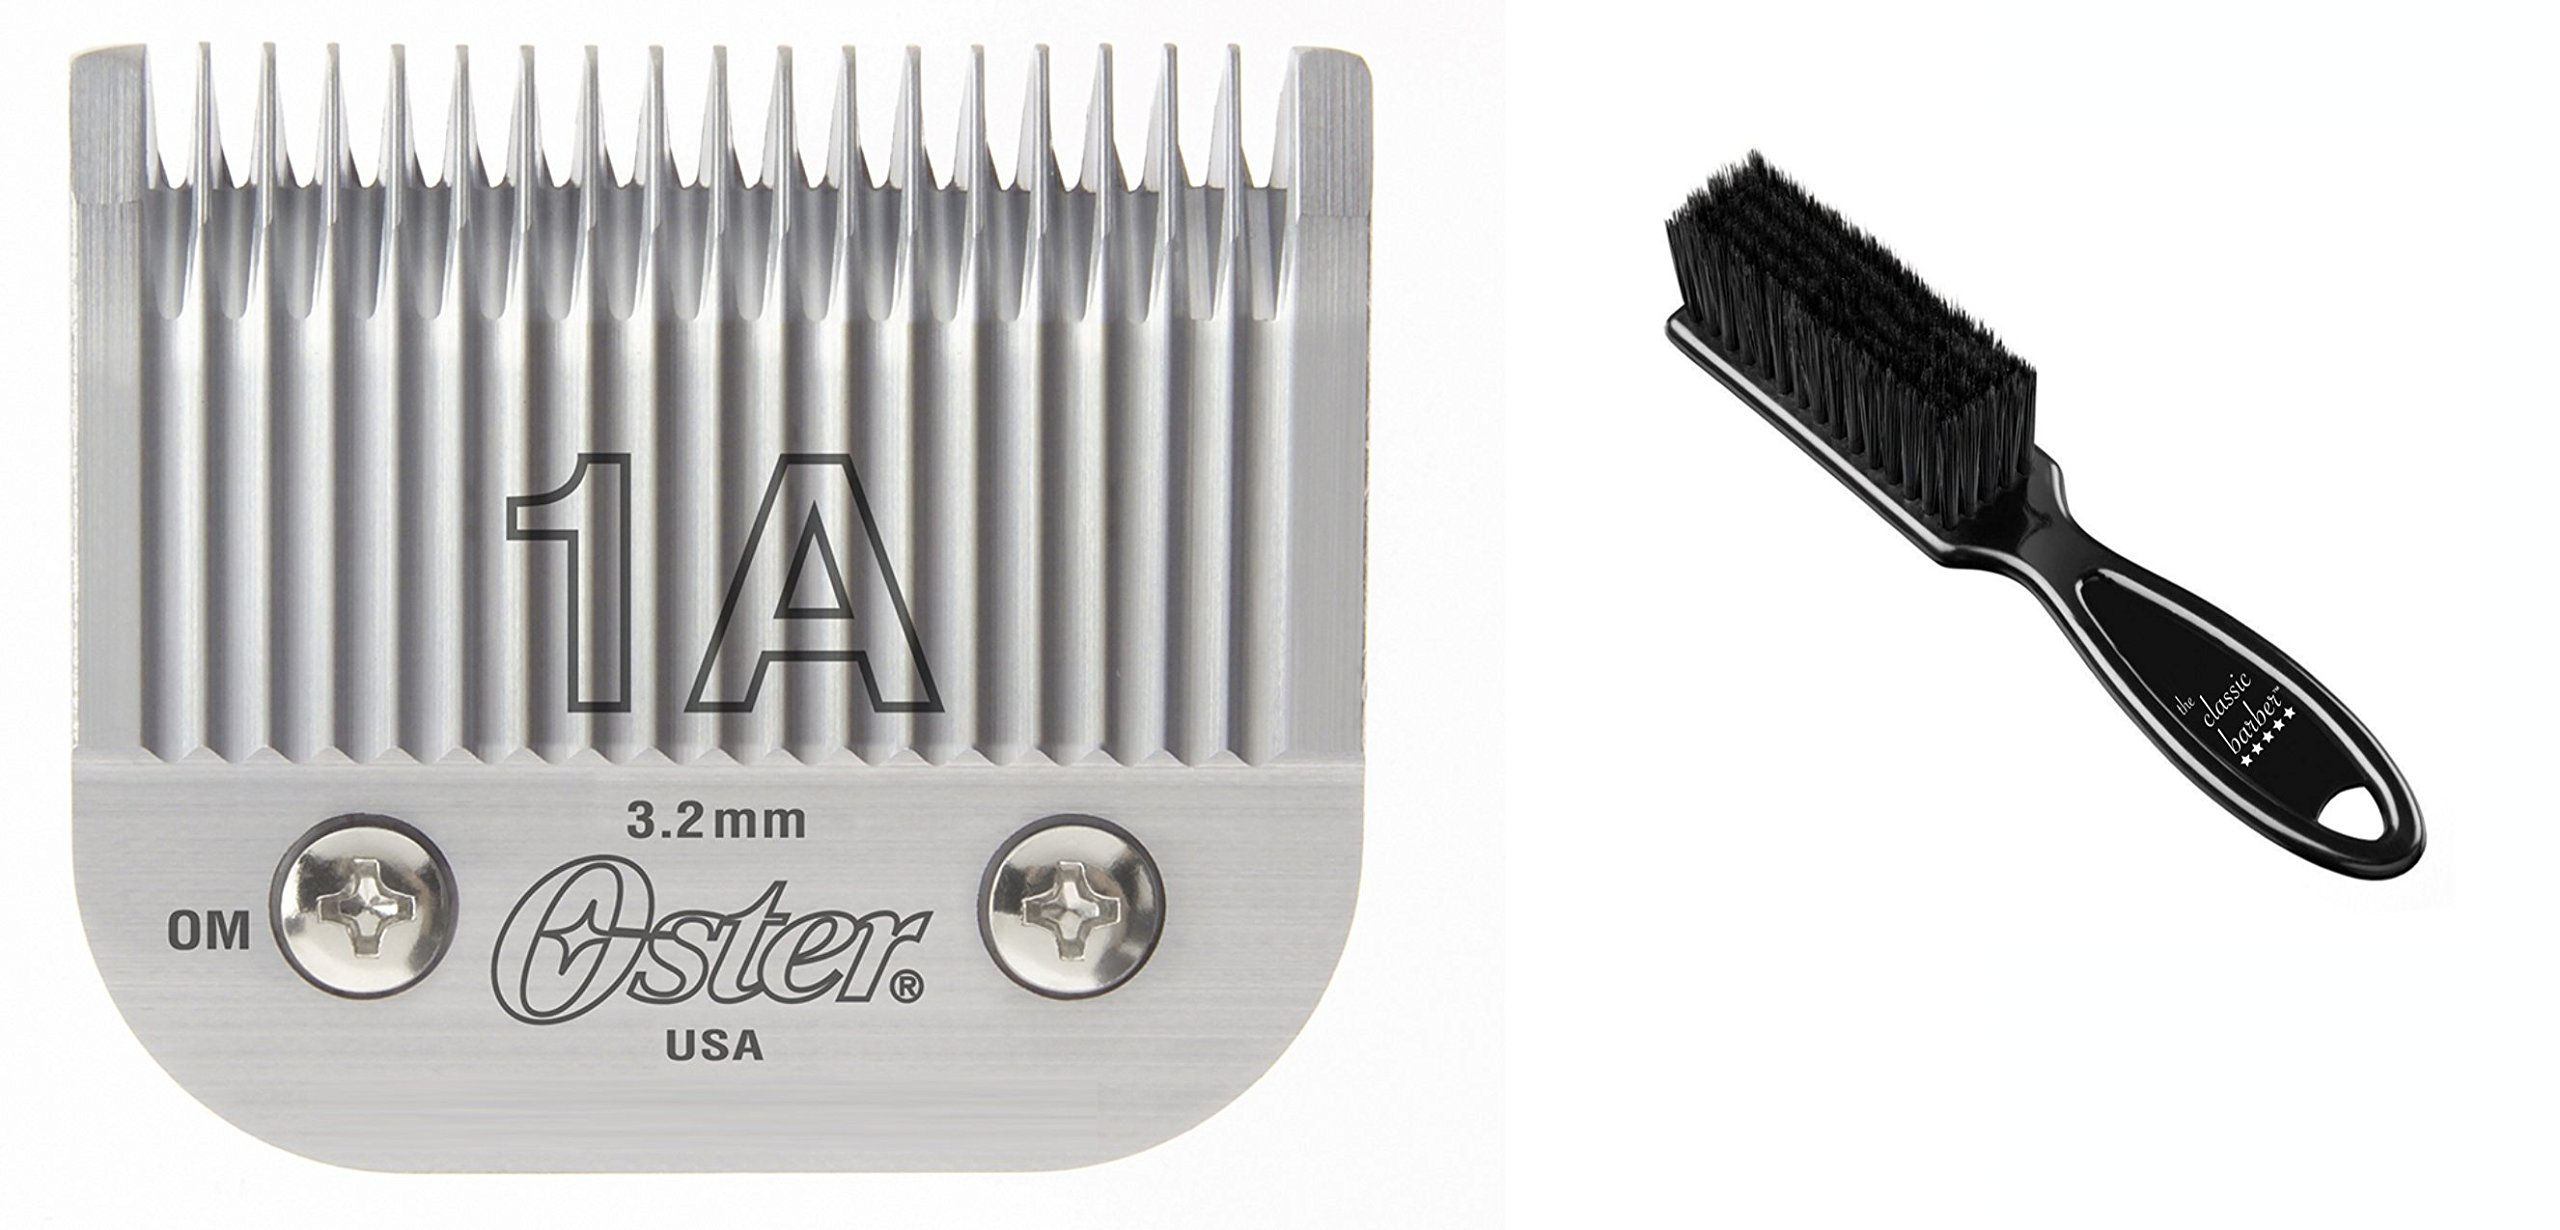 Oster Professional 76918-076 Replacement Blade for Classic 76/Star-Teq/Power-Teq Clippers, Size #1A 1/8'' (3.2mm)